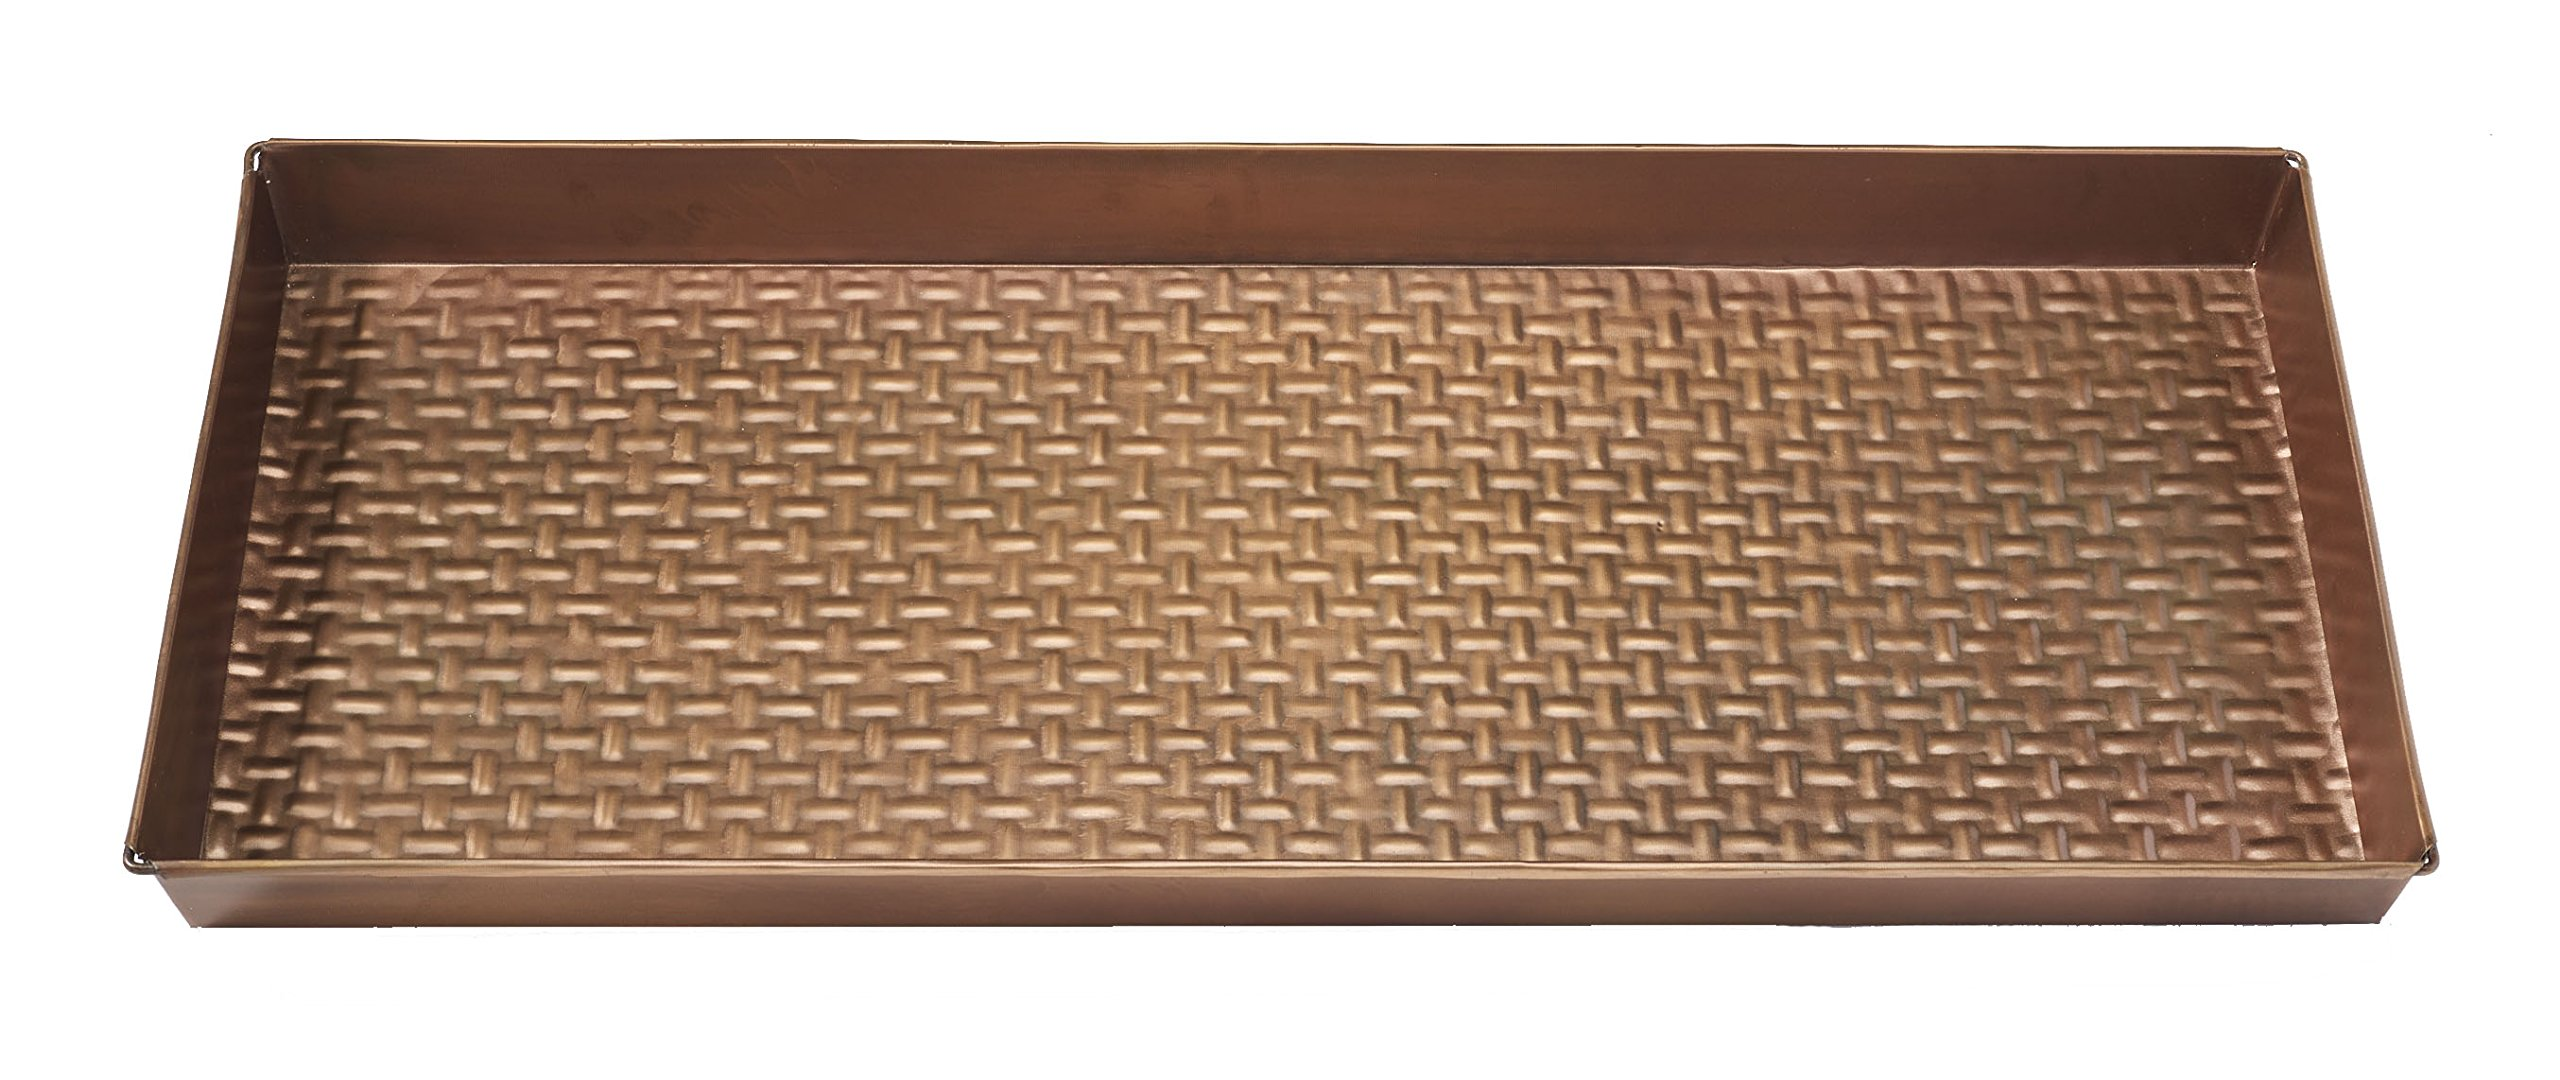 HF by LT Basketweave Pattern Metal Boot Tray, 30'' by 13'', Antique Copper Finish by HOME FURNISHINGS BY LARRY TRAVERSO (Image #2)